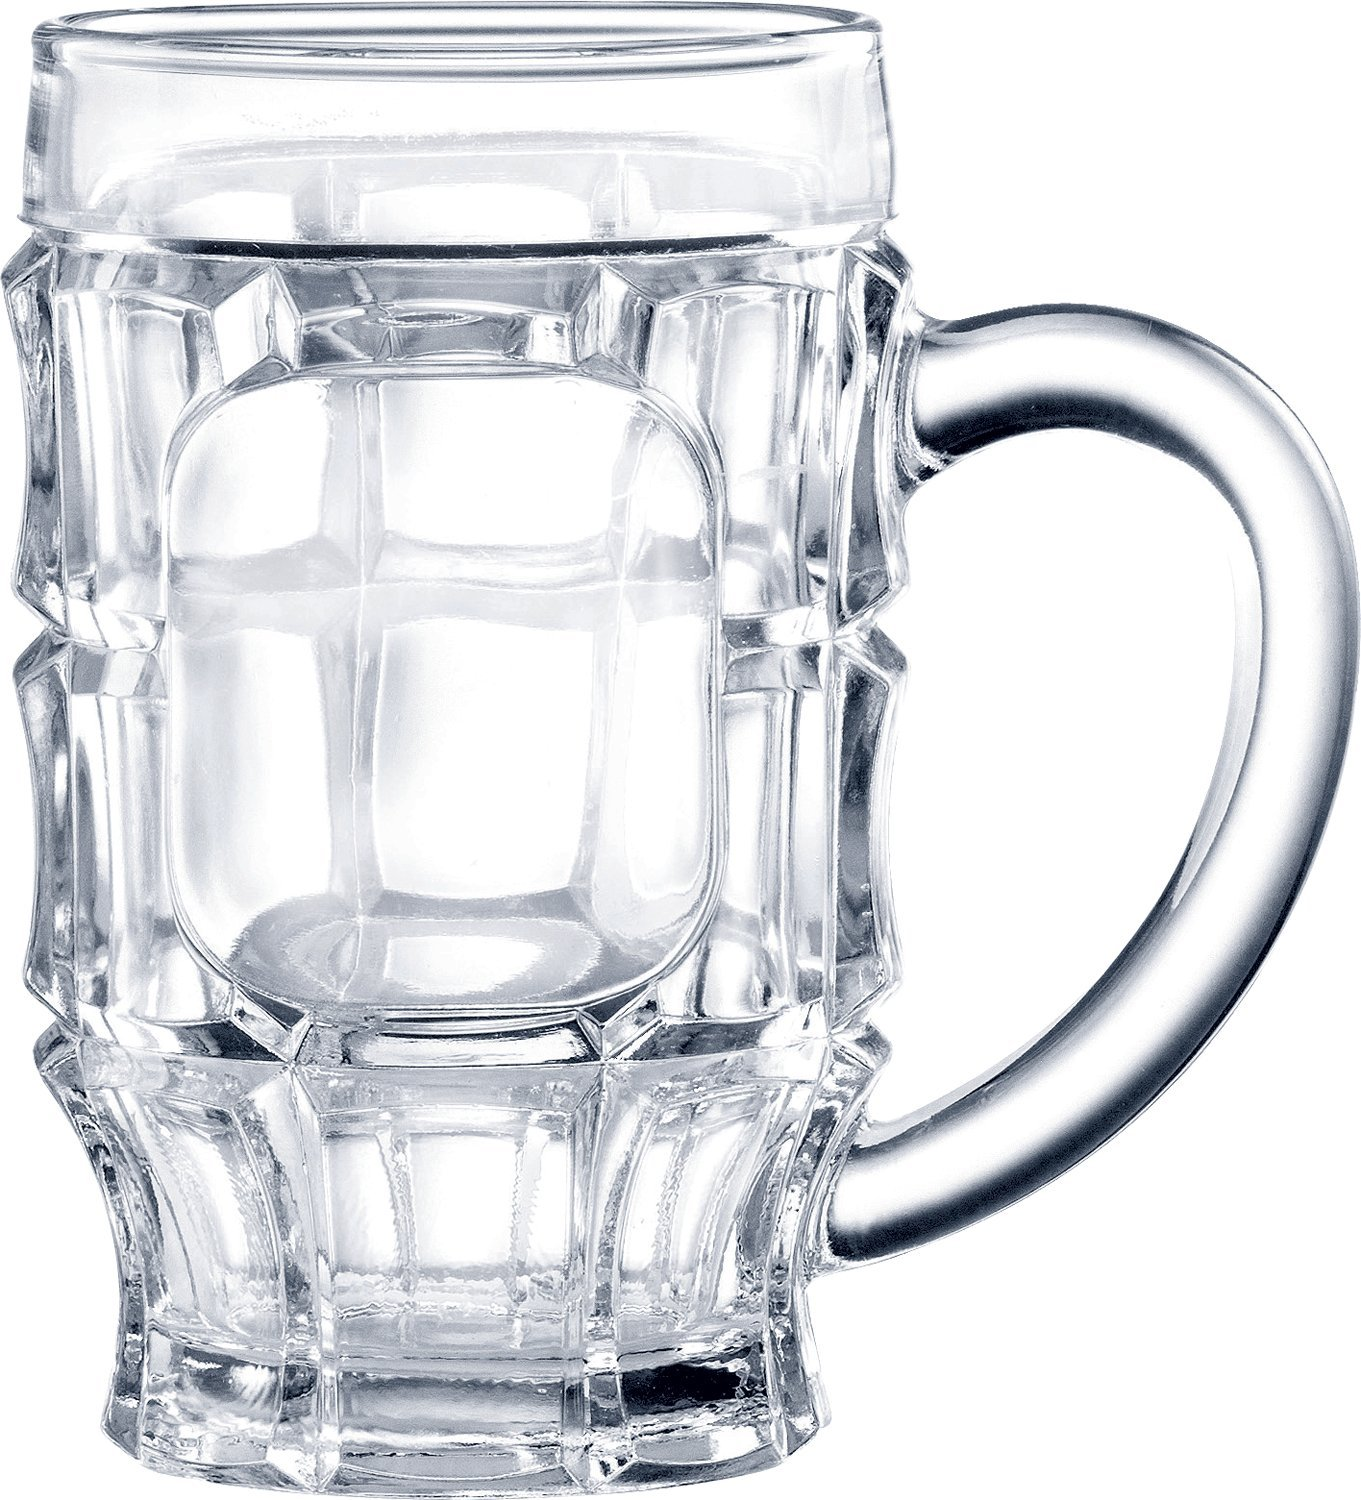 ITI 314 Mug, 18-Ounce, 24-Piece, Clear